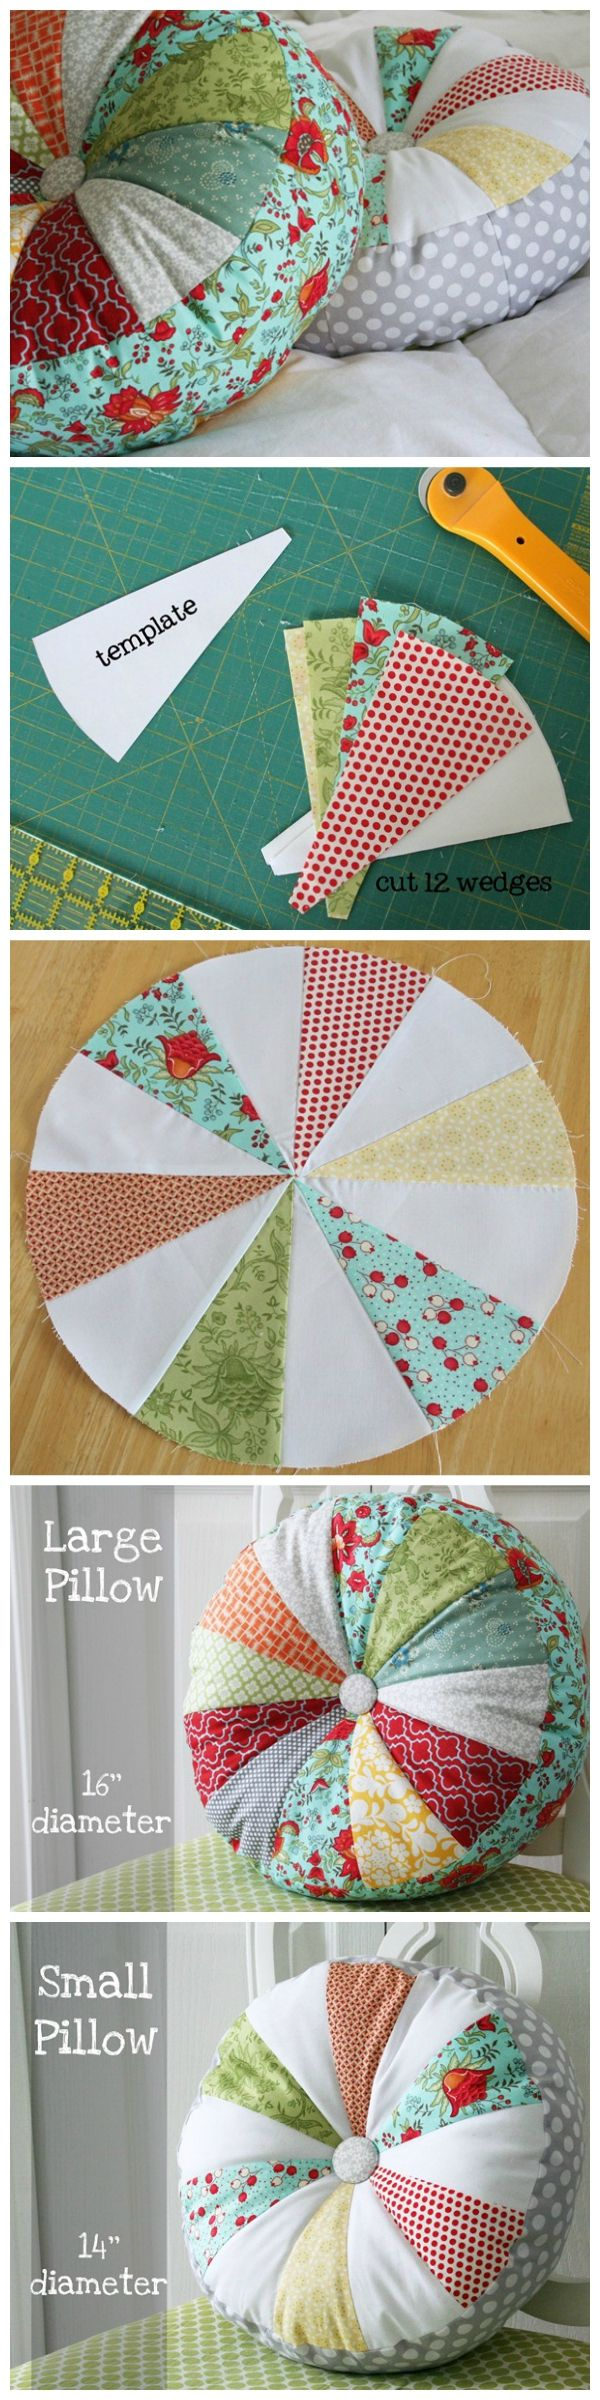 Pin by skyler dahlin on diy house pinterest pillows tutorials